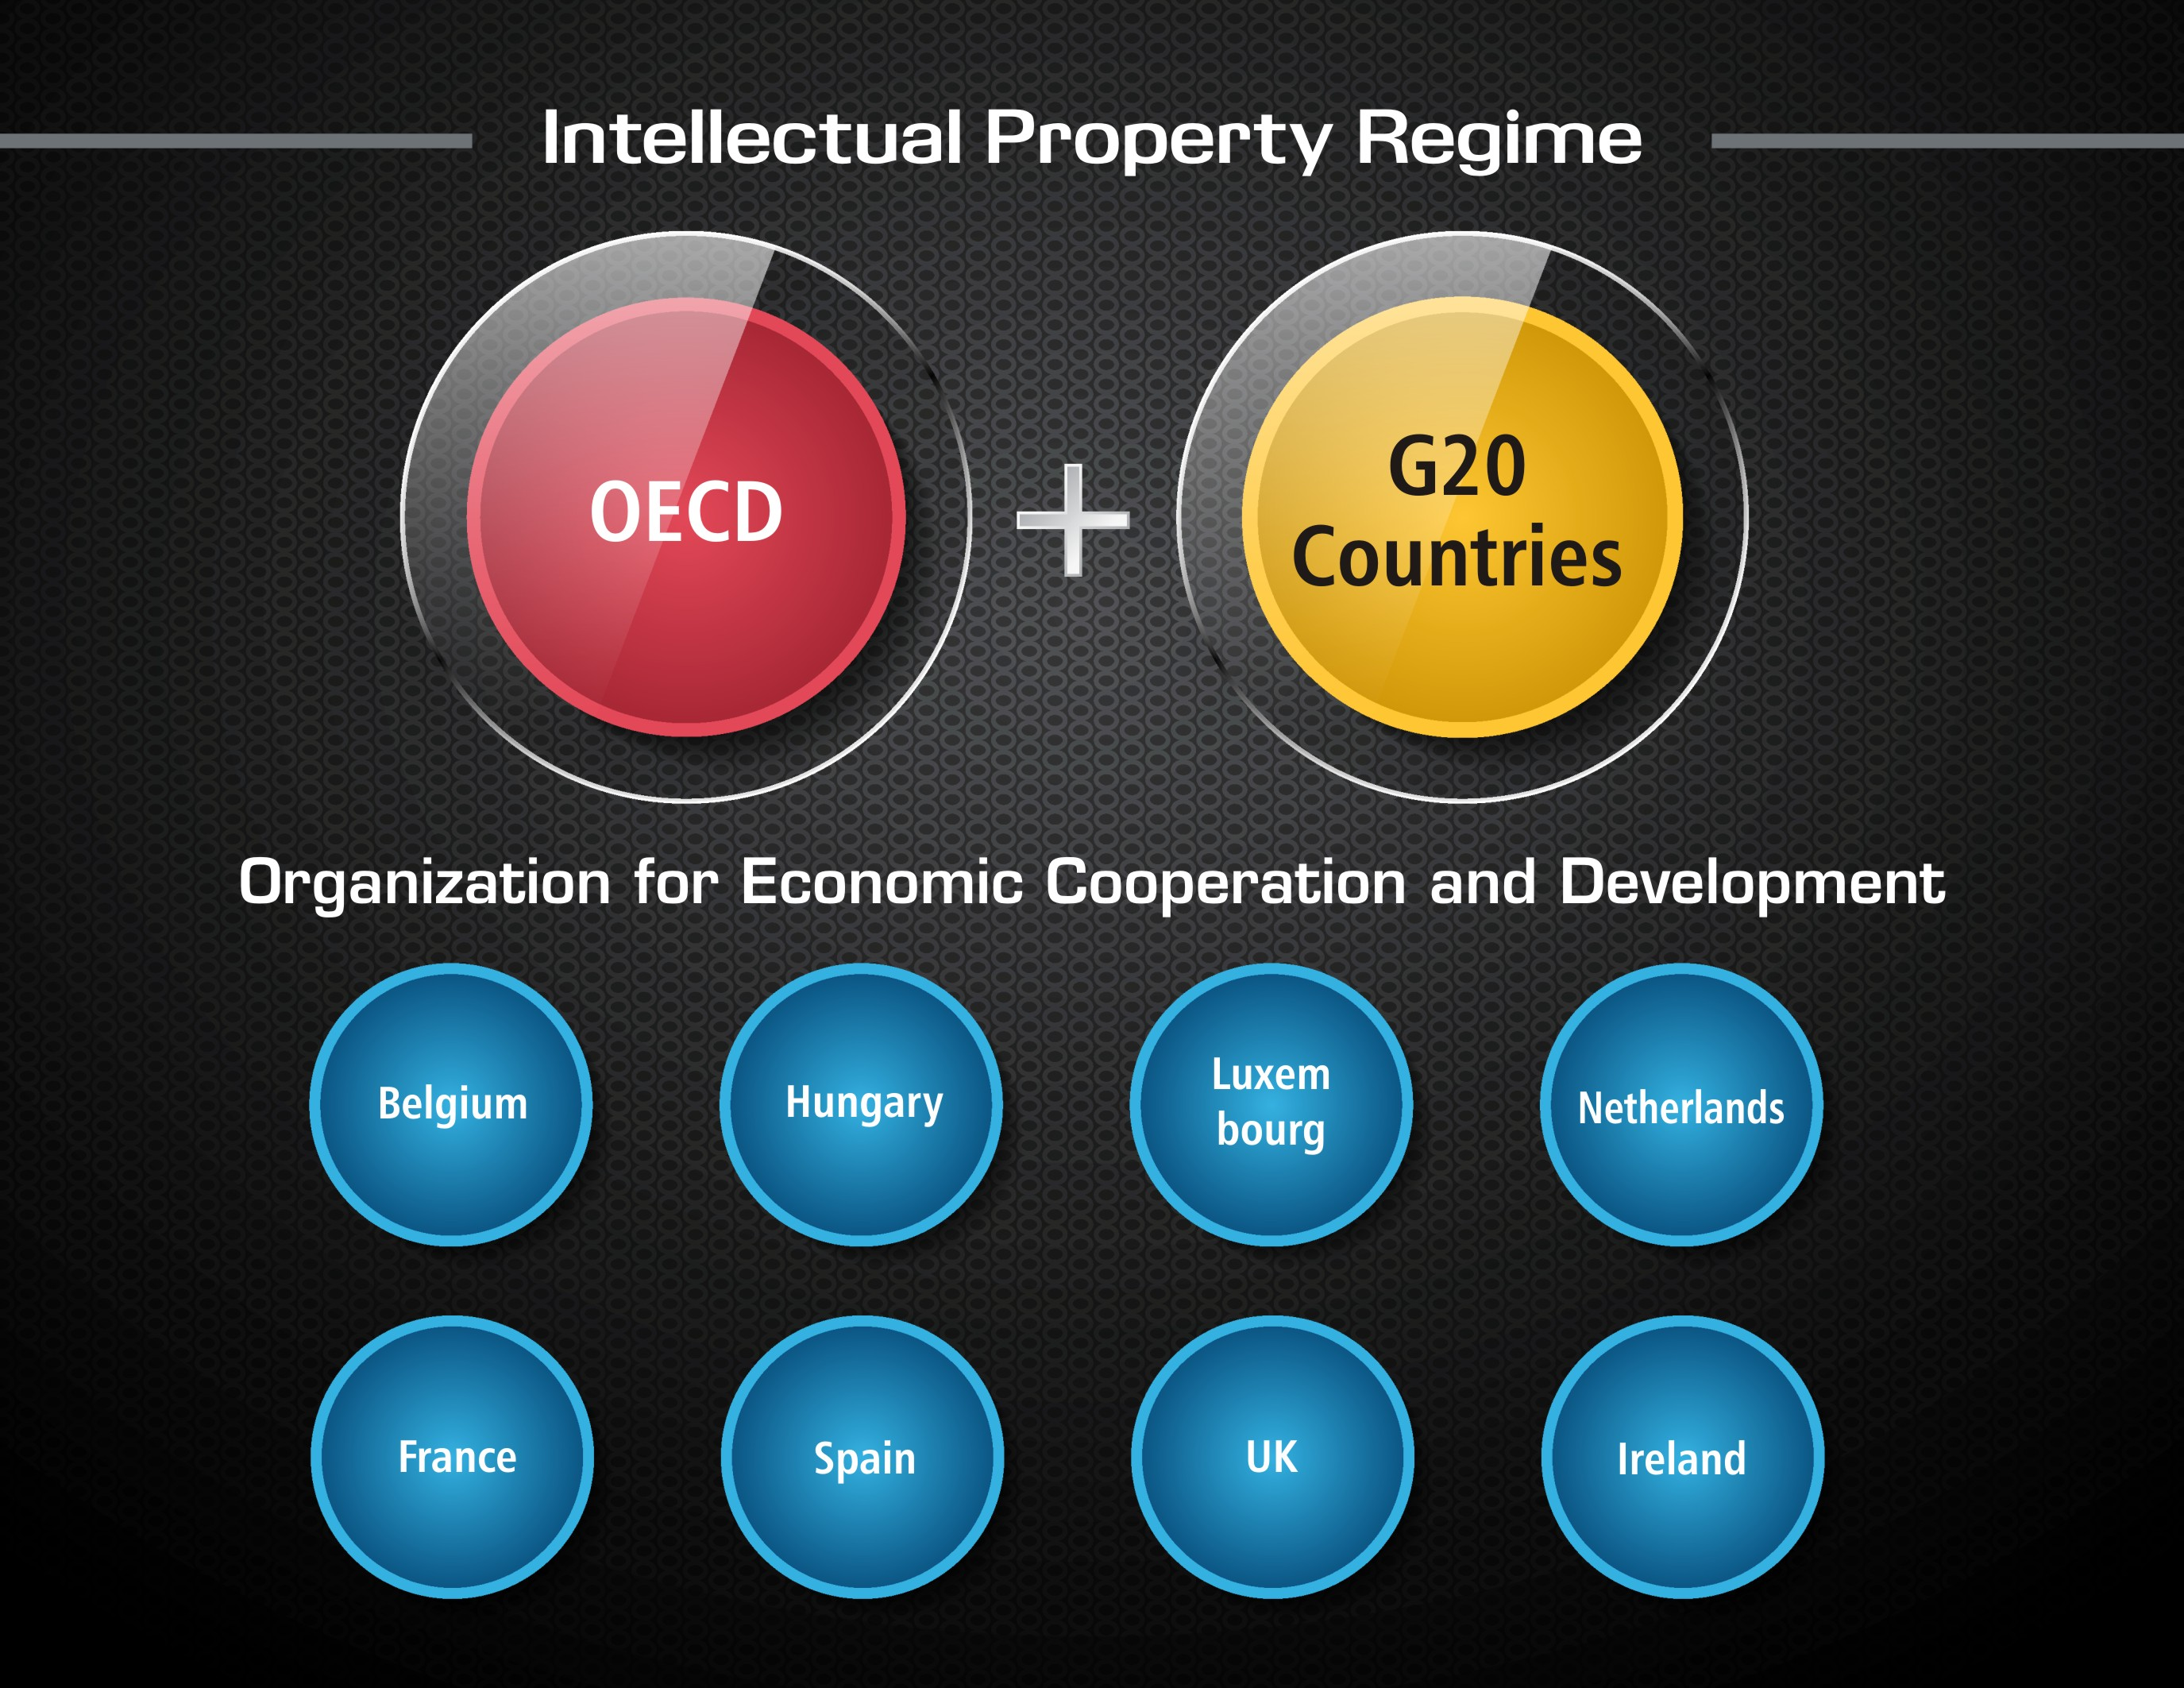 IP Regime Countries